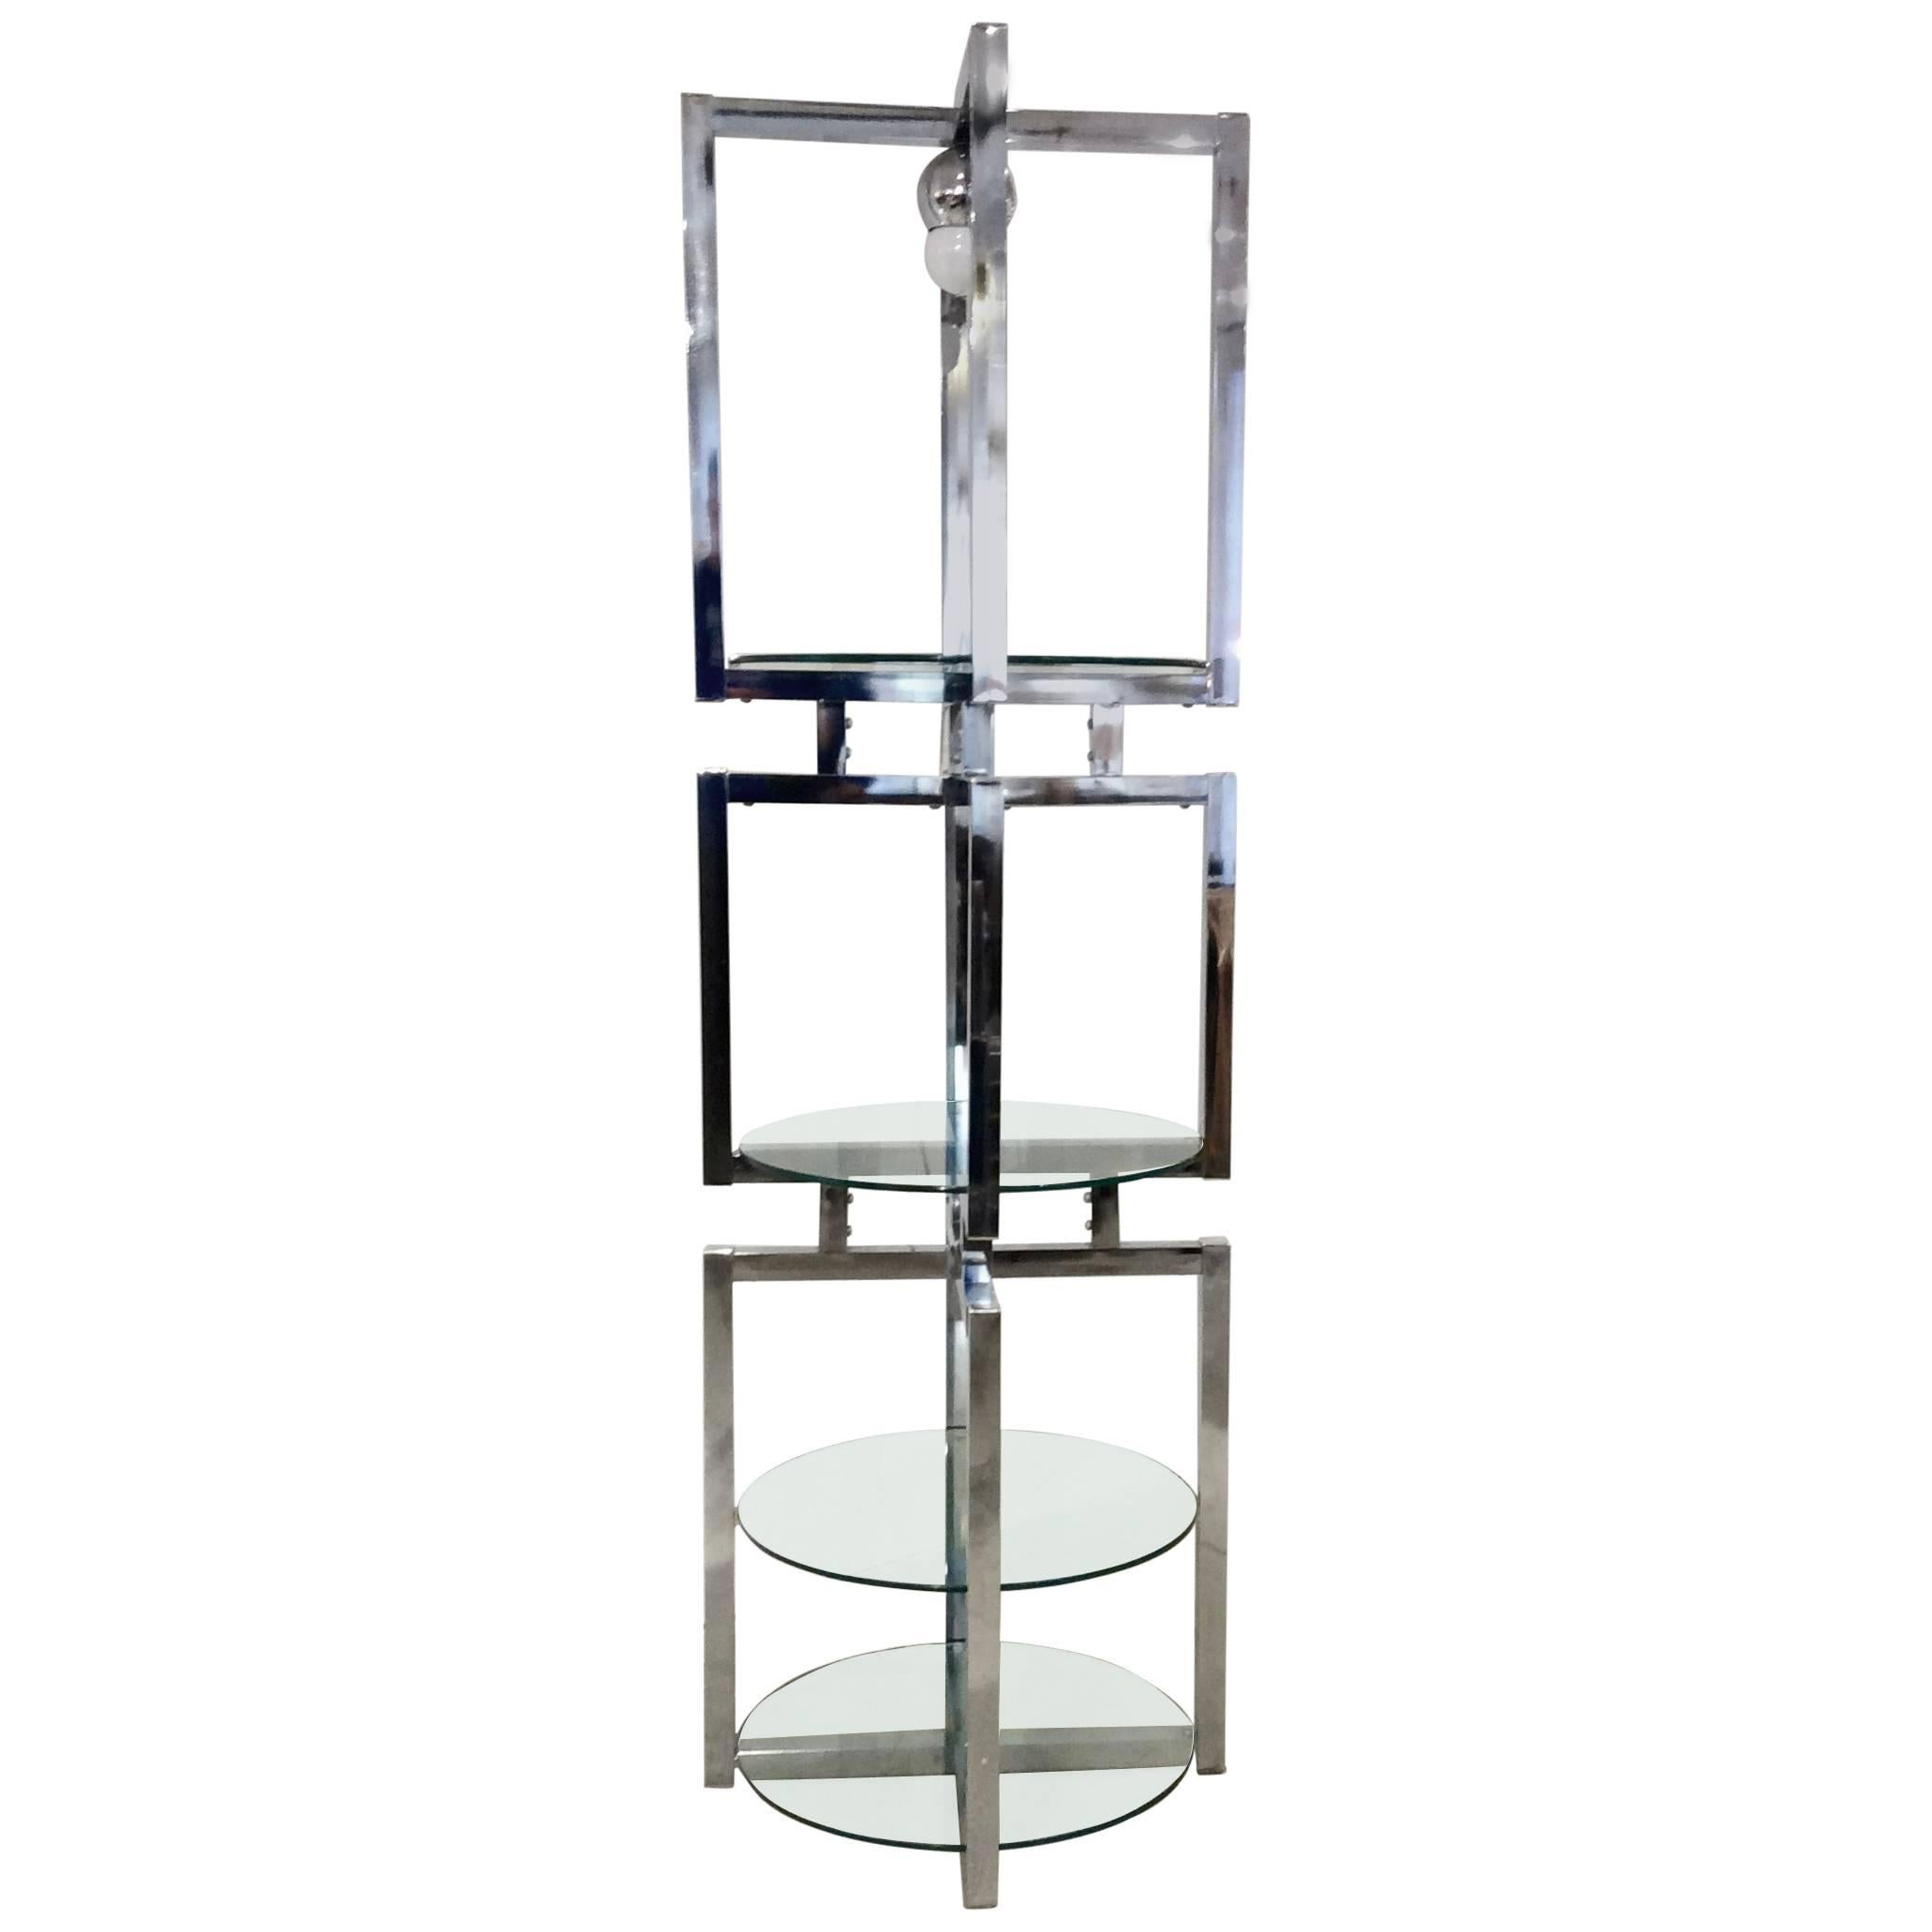 Geometric Chrome Tower Etagere in the style of Milo Baughman